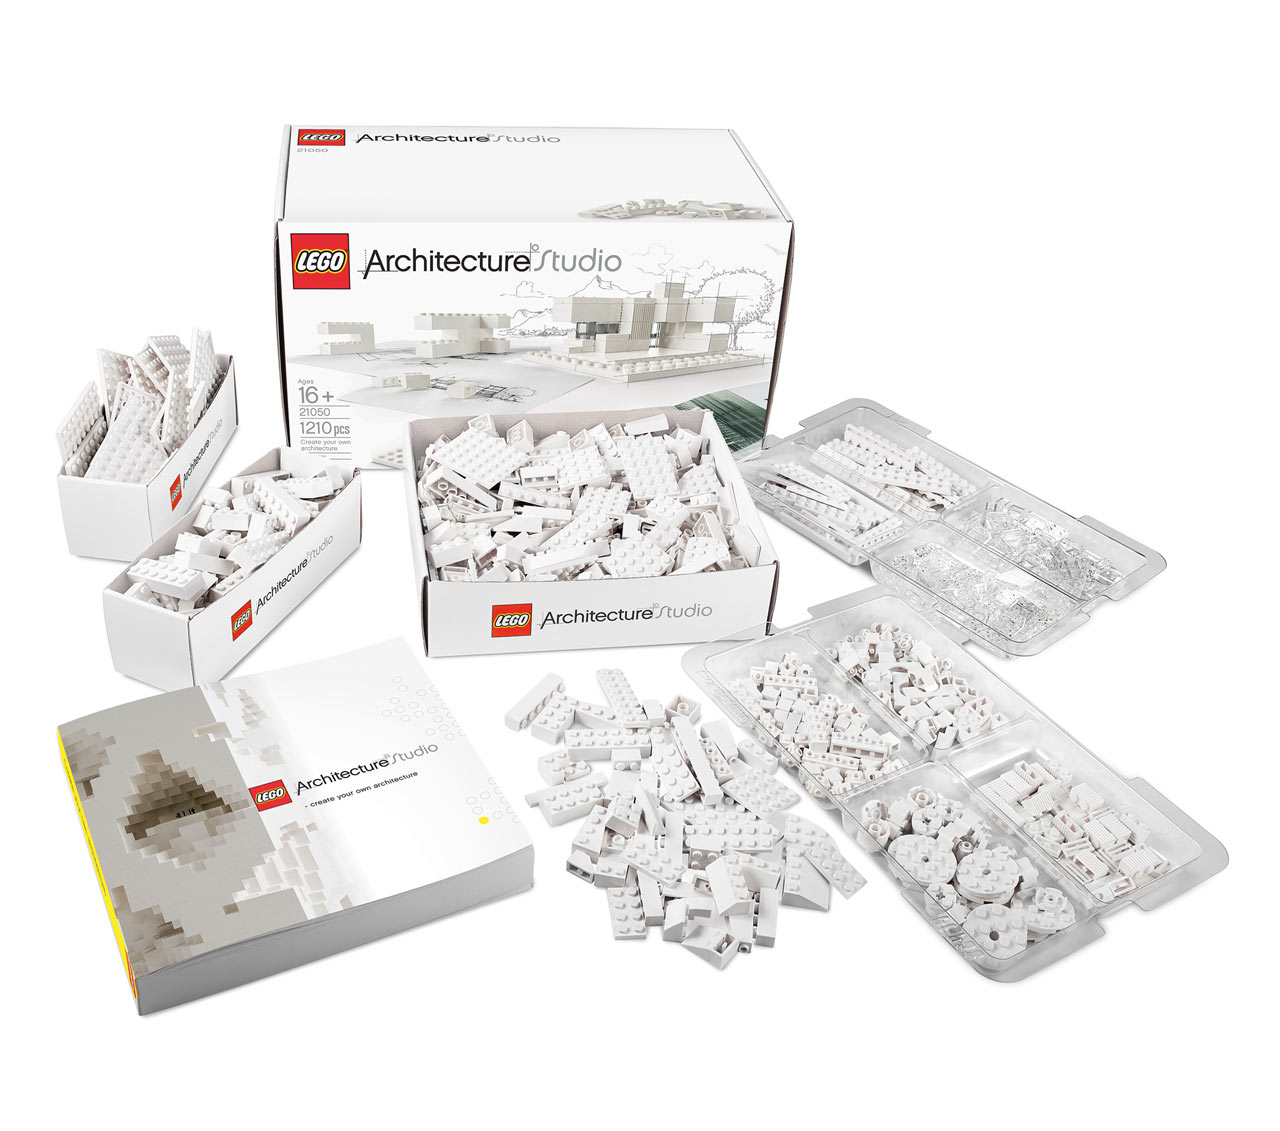 LEGO-Architecture-Studio-Toolkit-1